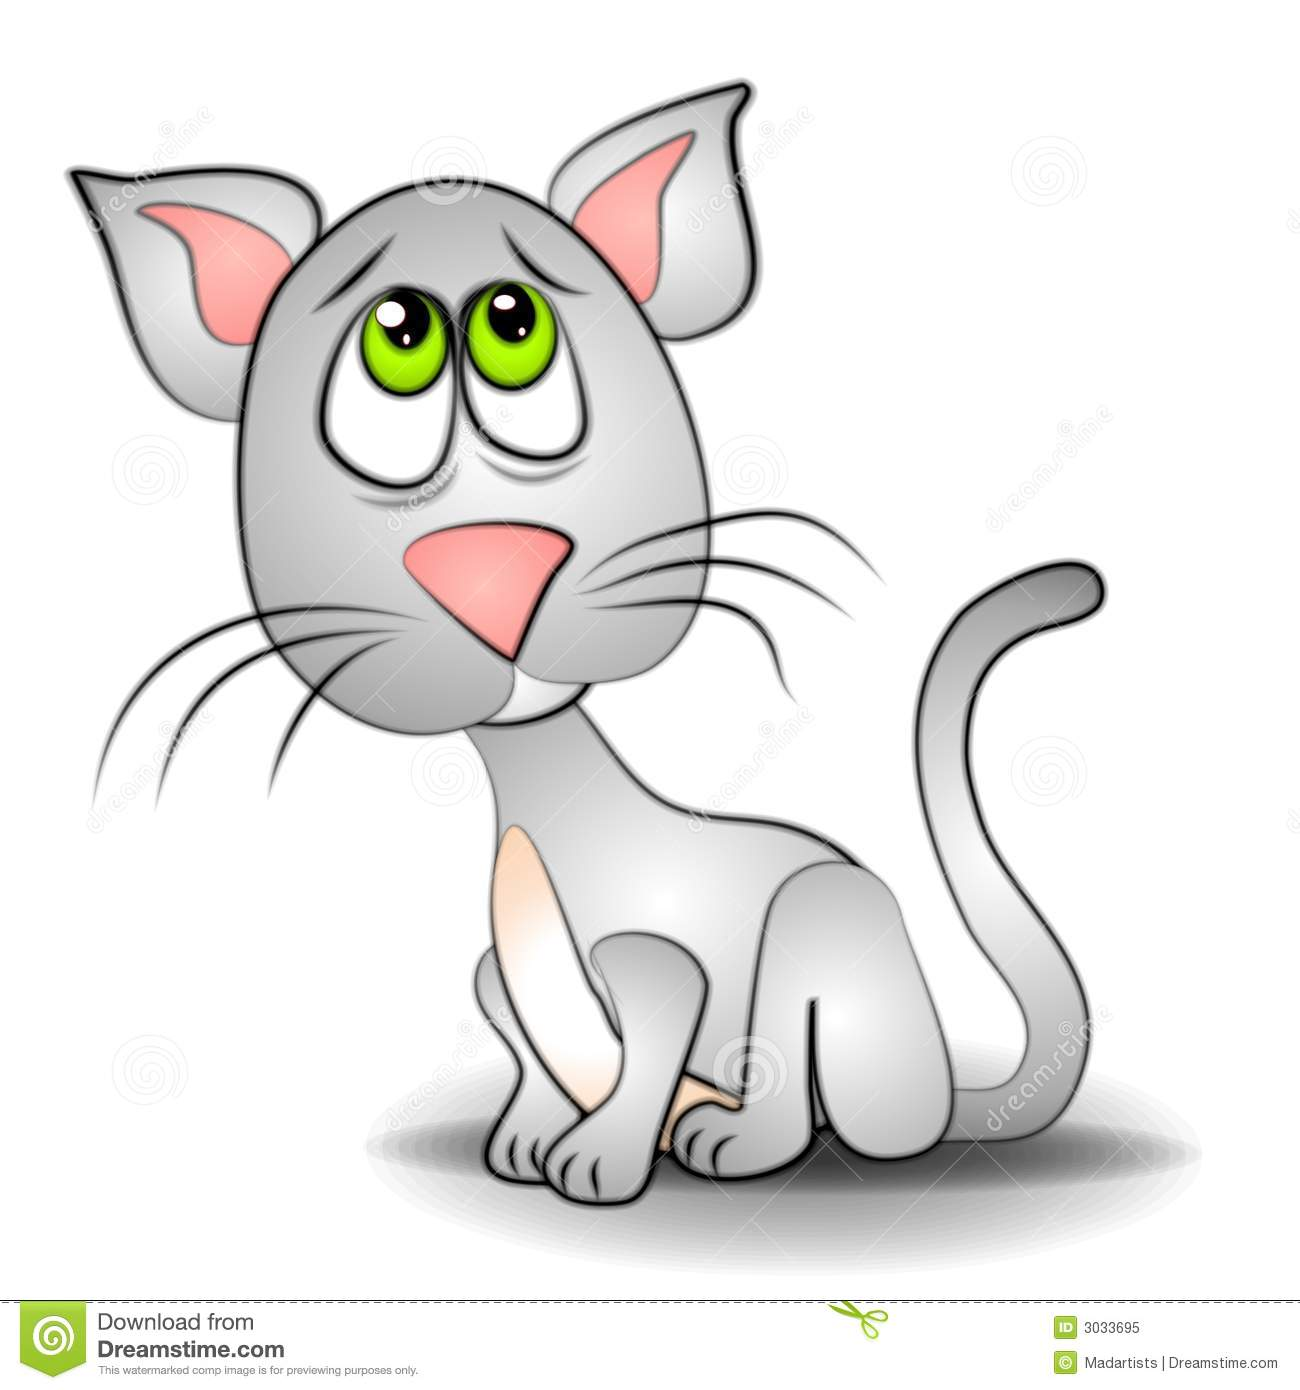 Sad Eyes Cat Kitten Clip Art Royalty Free Stock Photo   Image  3033695